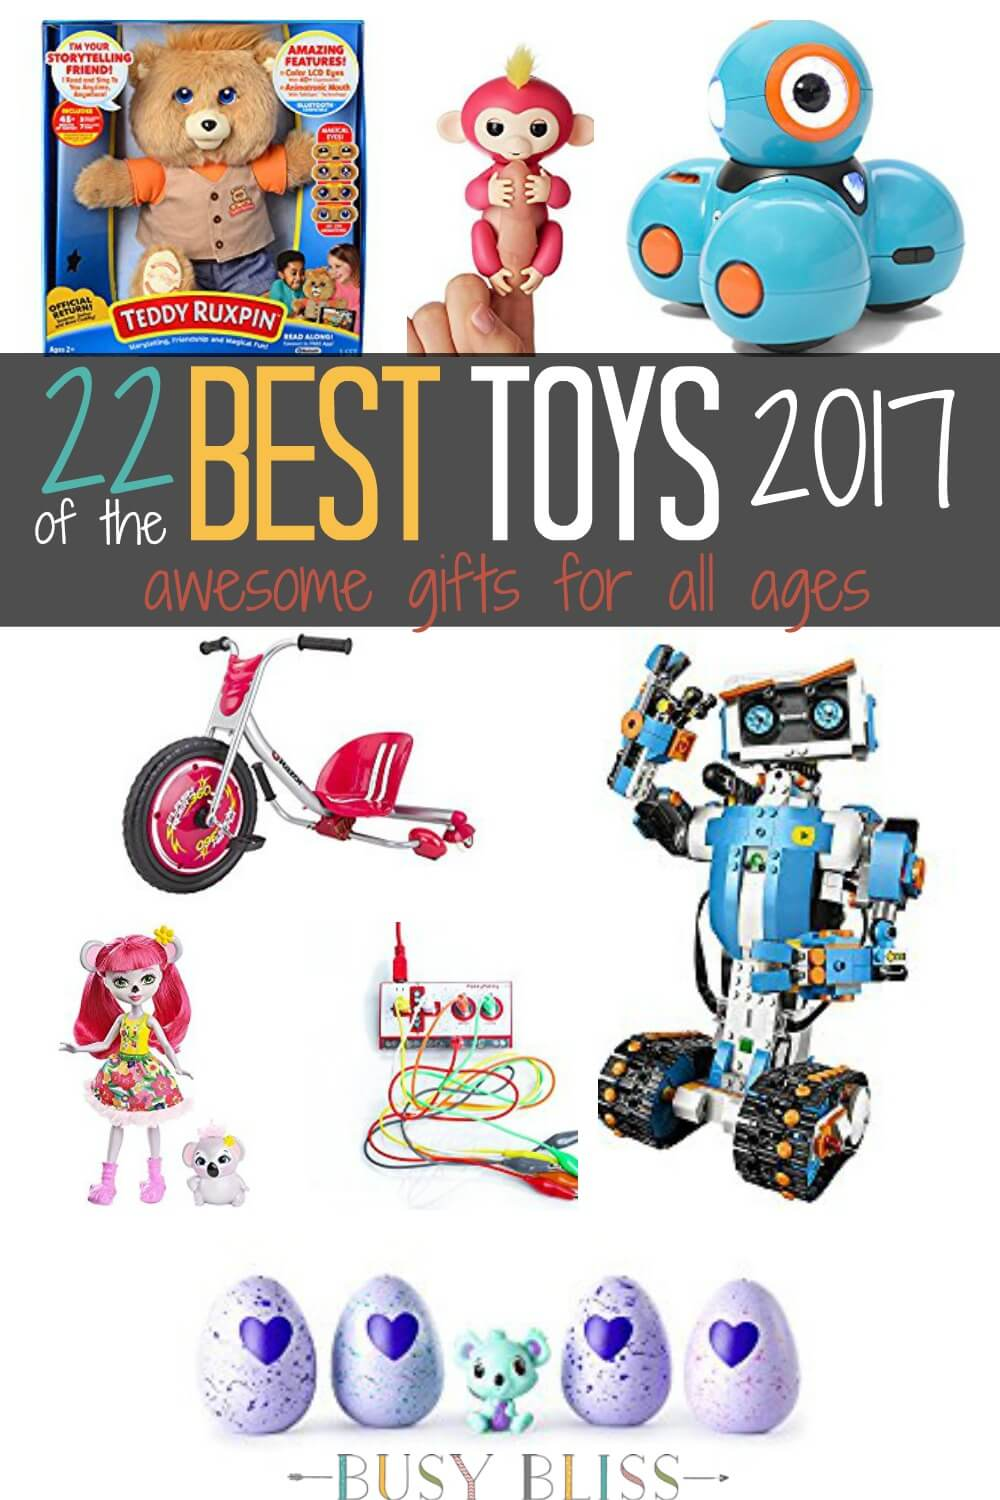 Get a head start on your holiday toy shopping with this list of the best toys 2017. These are great gift ideas for all ages!